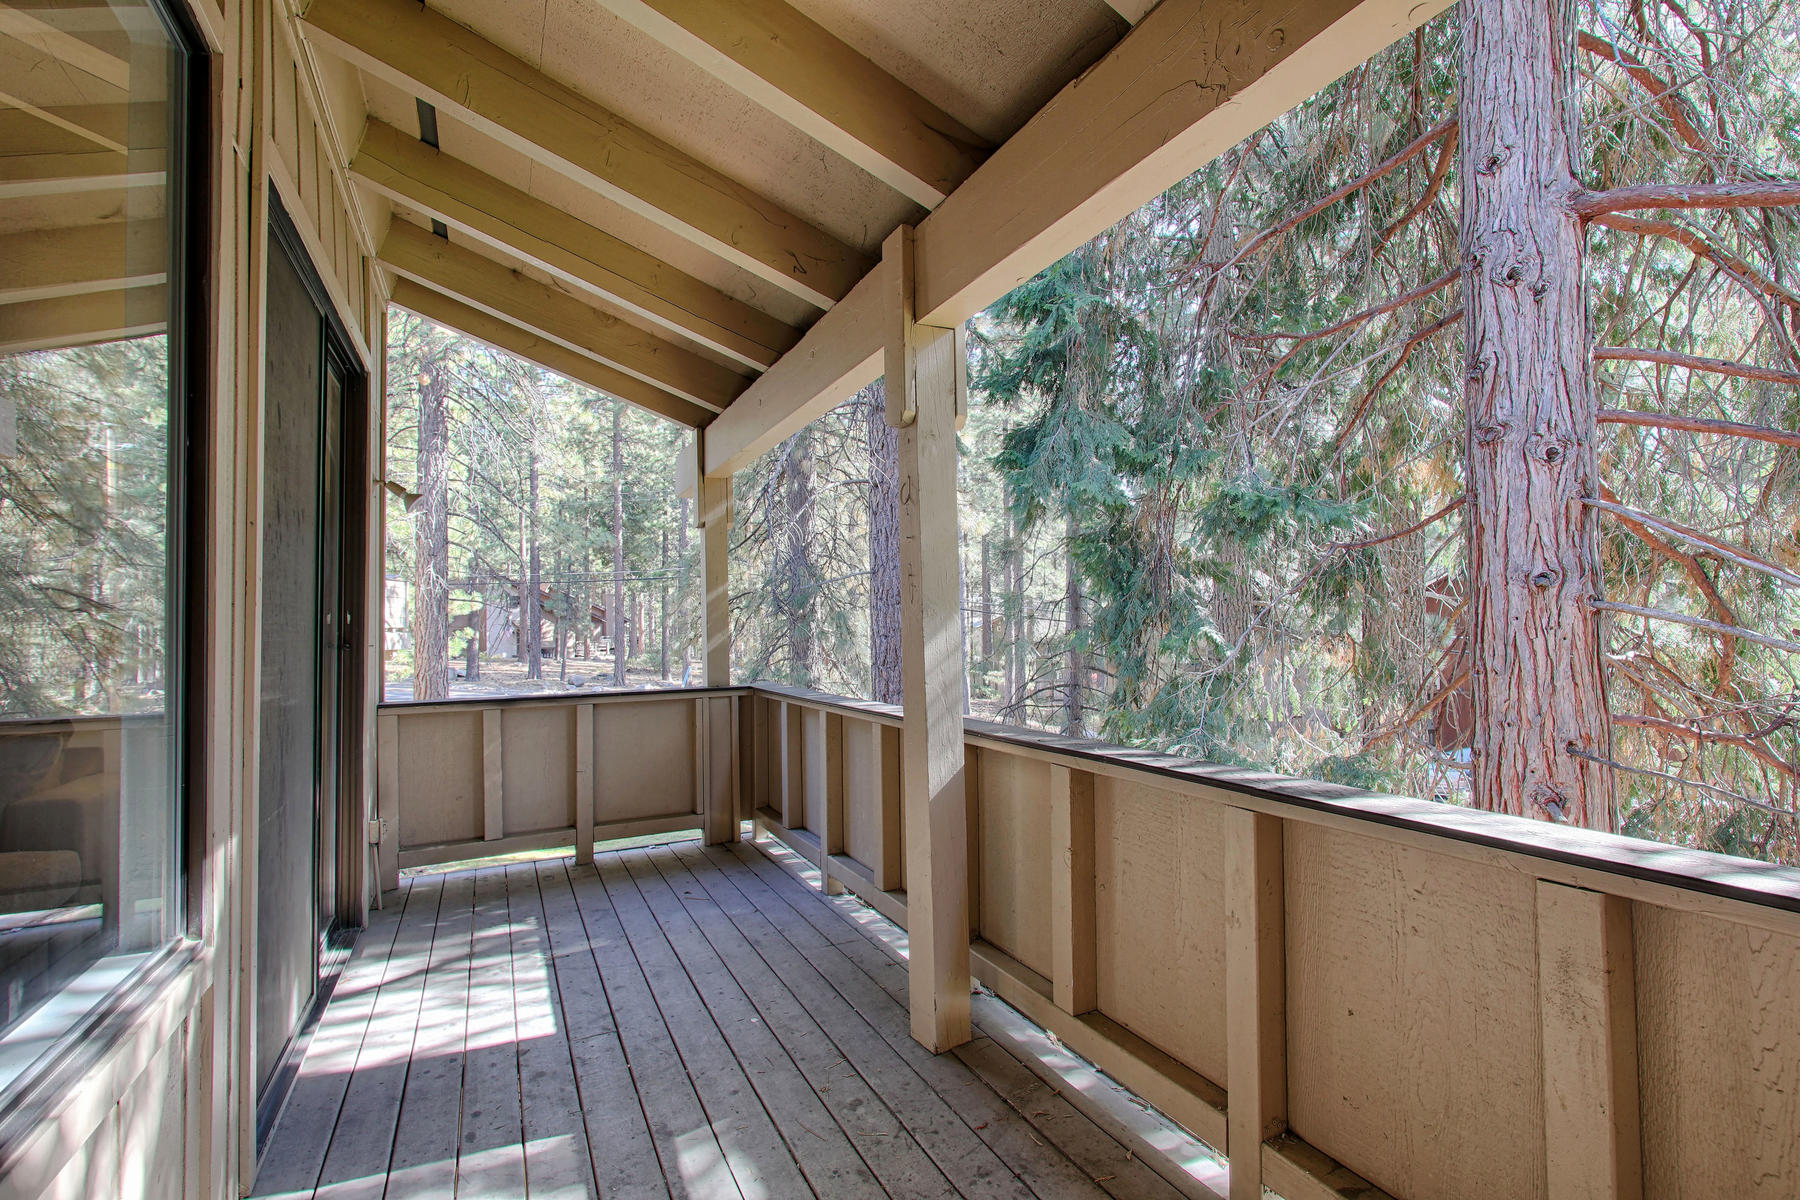 Additional photo for property listing at 321 Ski Way #210, Incline Village, NV 89451 321 Ski Way #210 Incline Village, Nevada 89451 United States